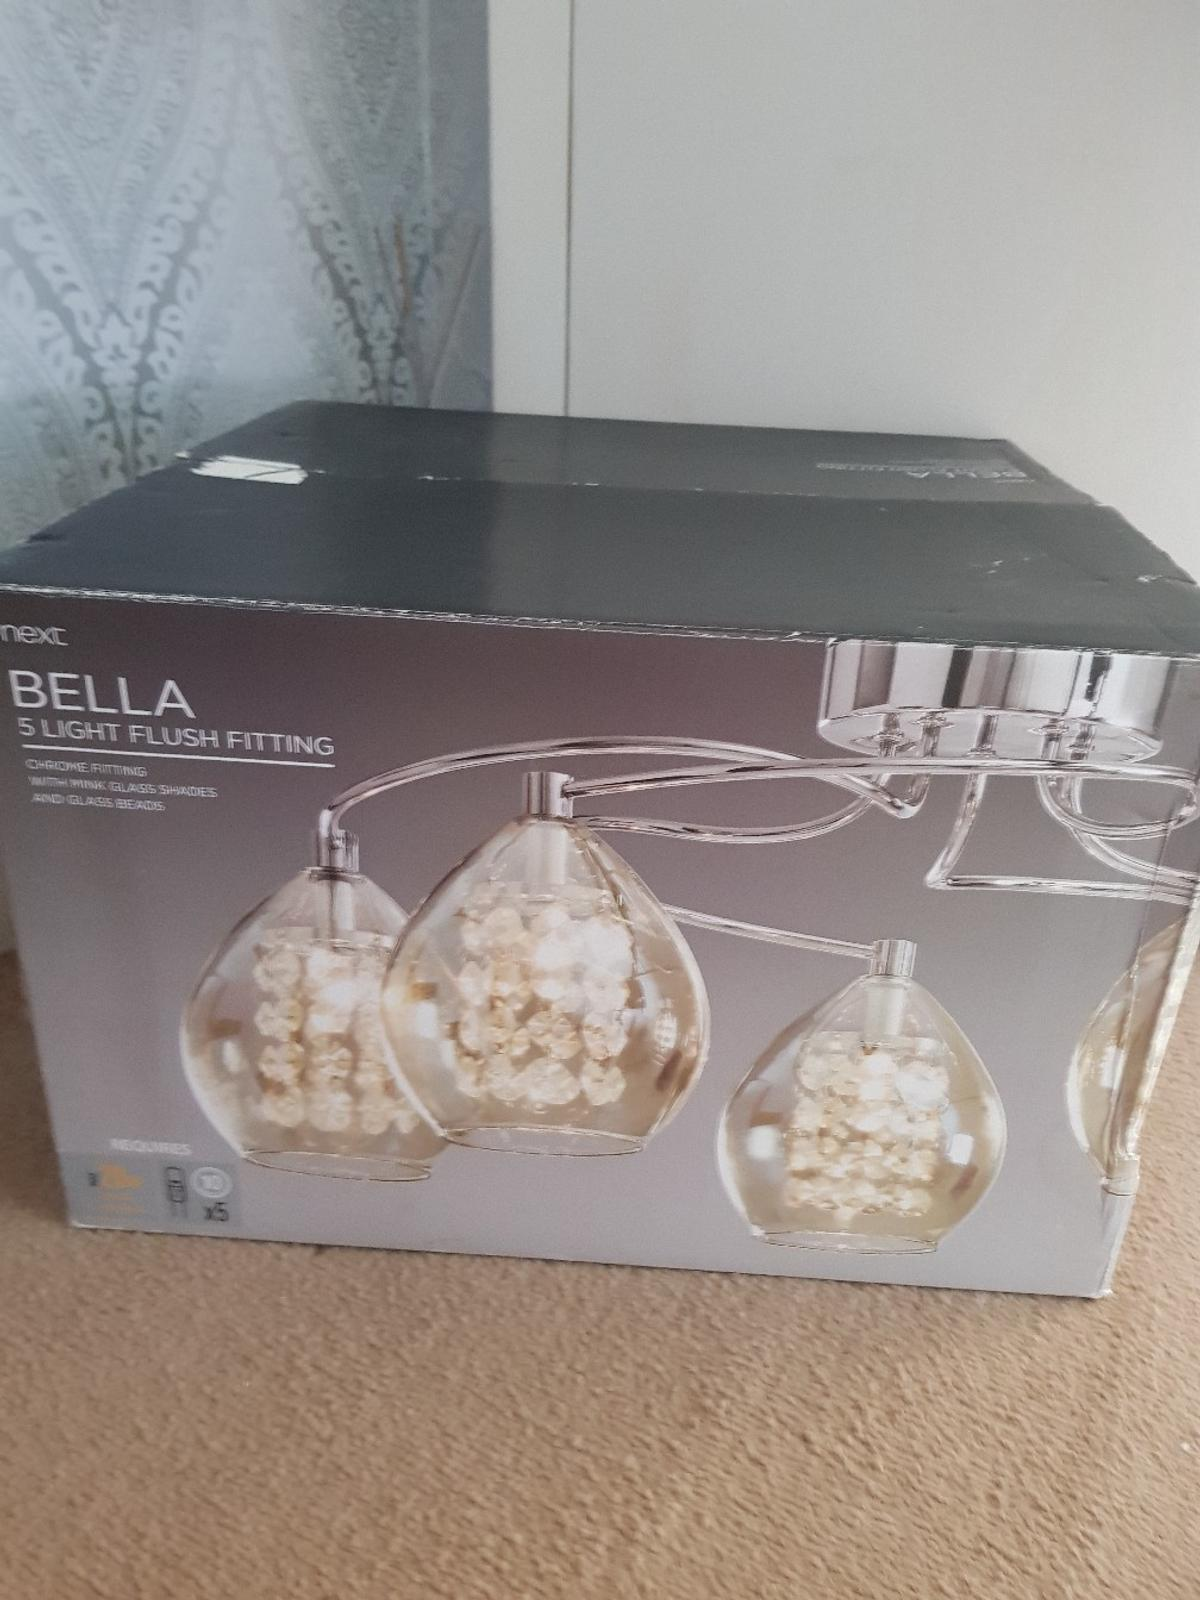 check out 4f290 4d770 NEXT Bella Light shade fitting